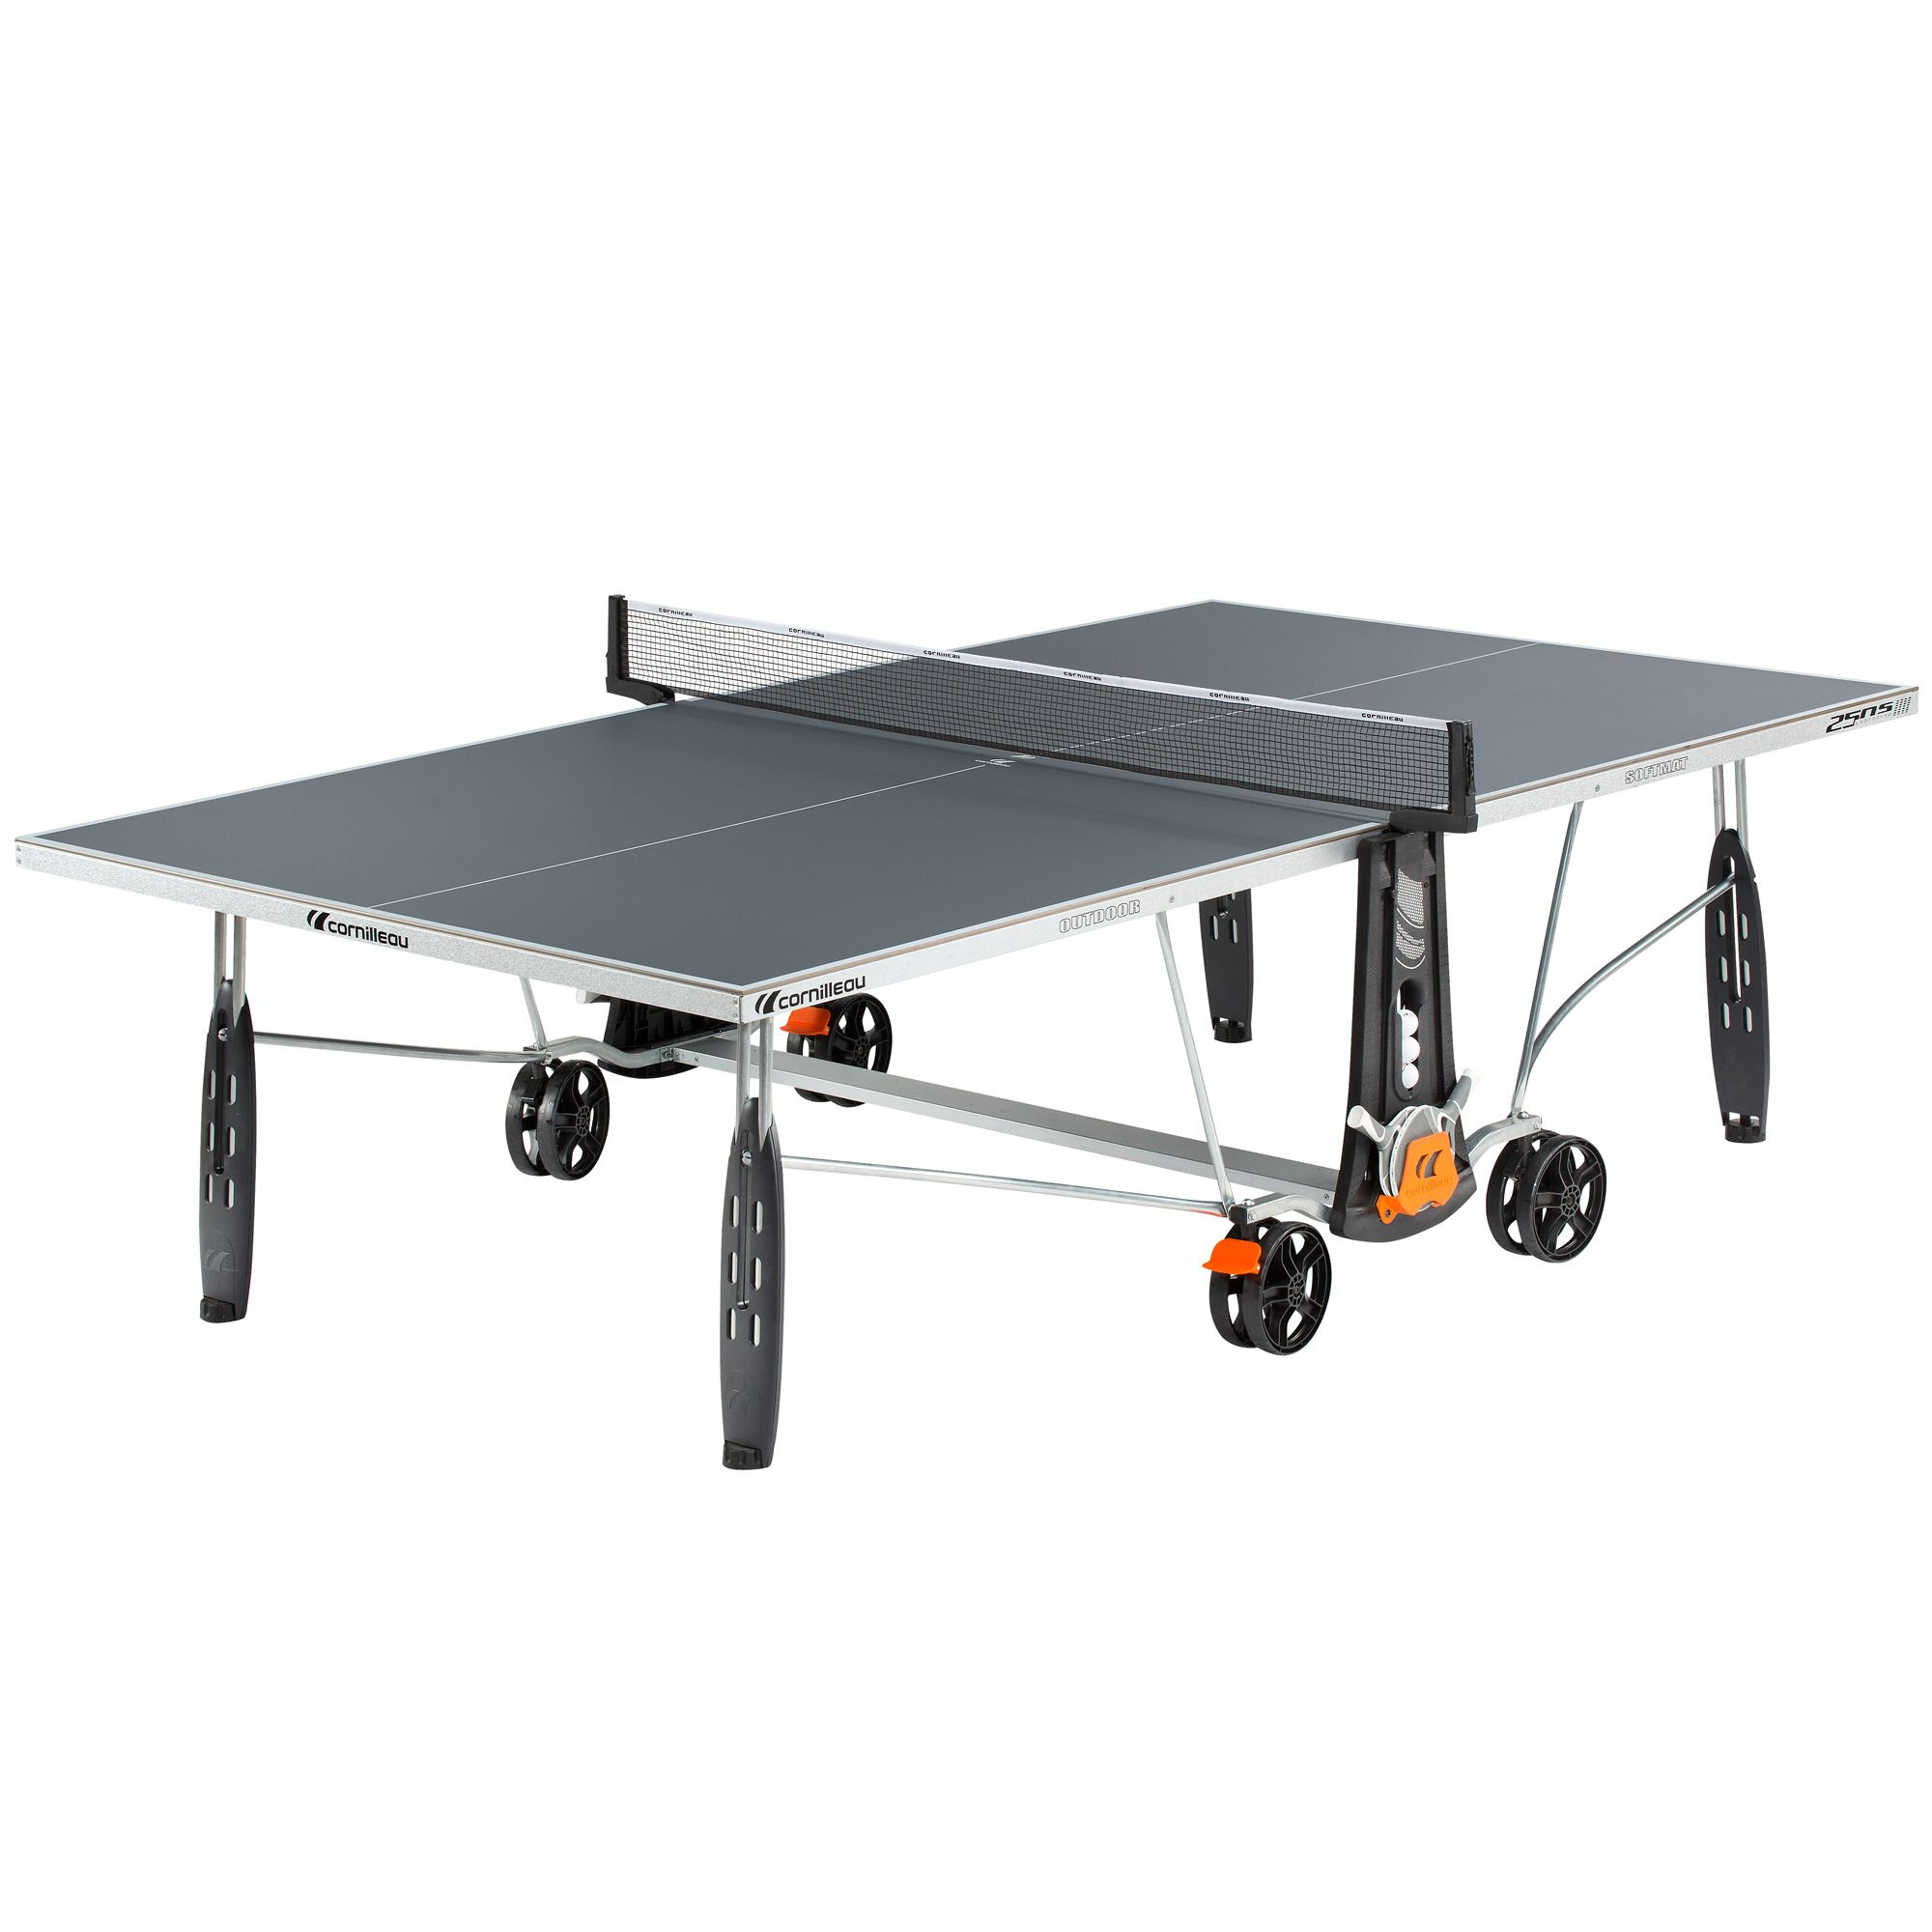 Cornilleau sport 250s crossover outdoor table tennis table - Table ping pong cornilleau outdoor ...